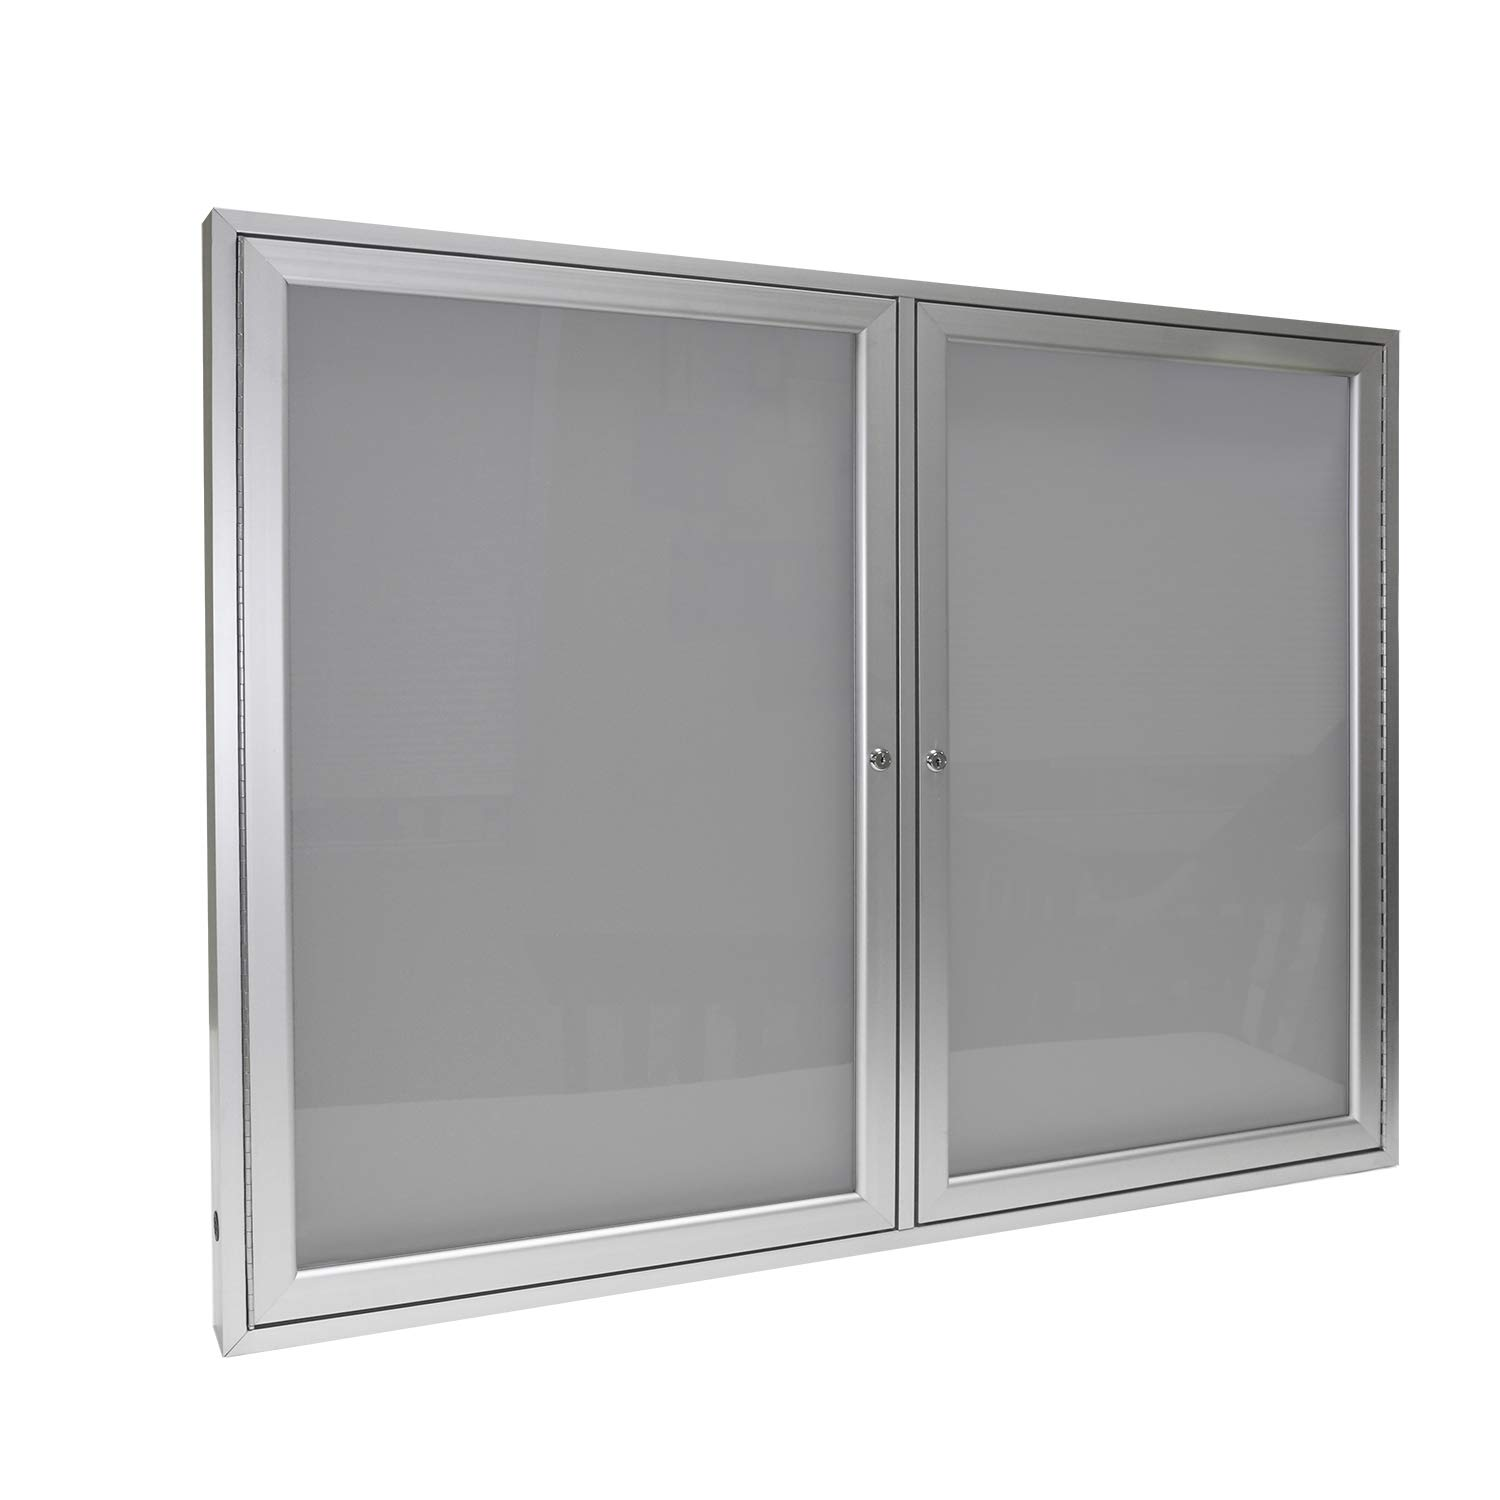 Ghent 2 Door Enclosed Vinyl Bulletin Board, Silver